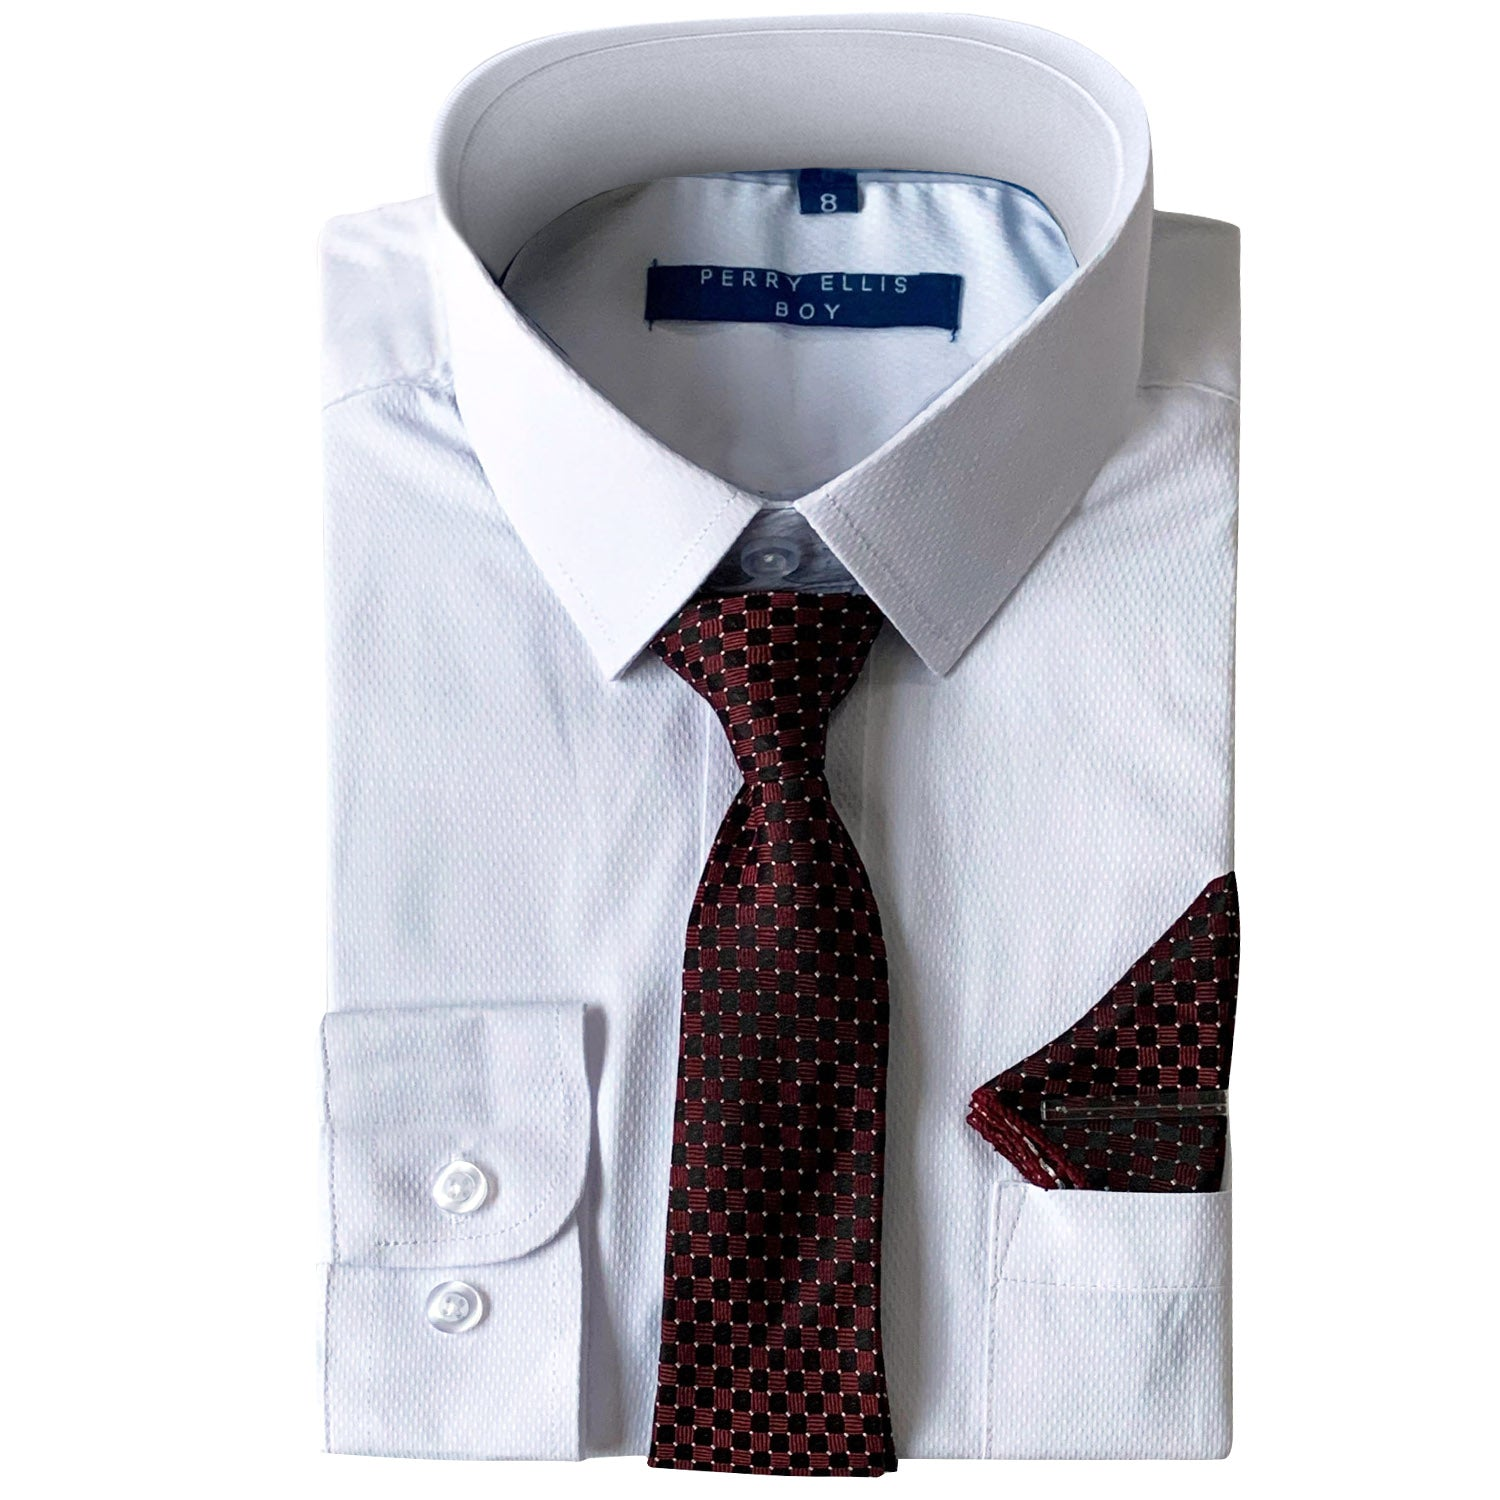 Perry Ellis Boys Dress Shirts w Burgundy Tie Solid Shirts w Patterned Tie